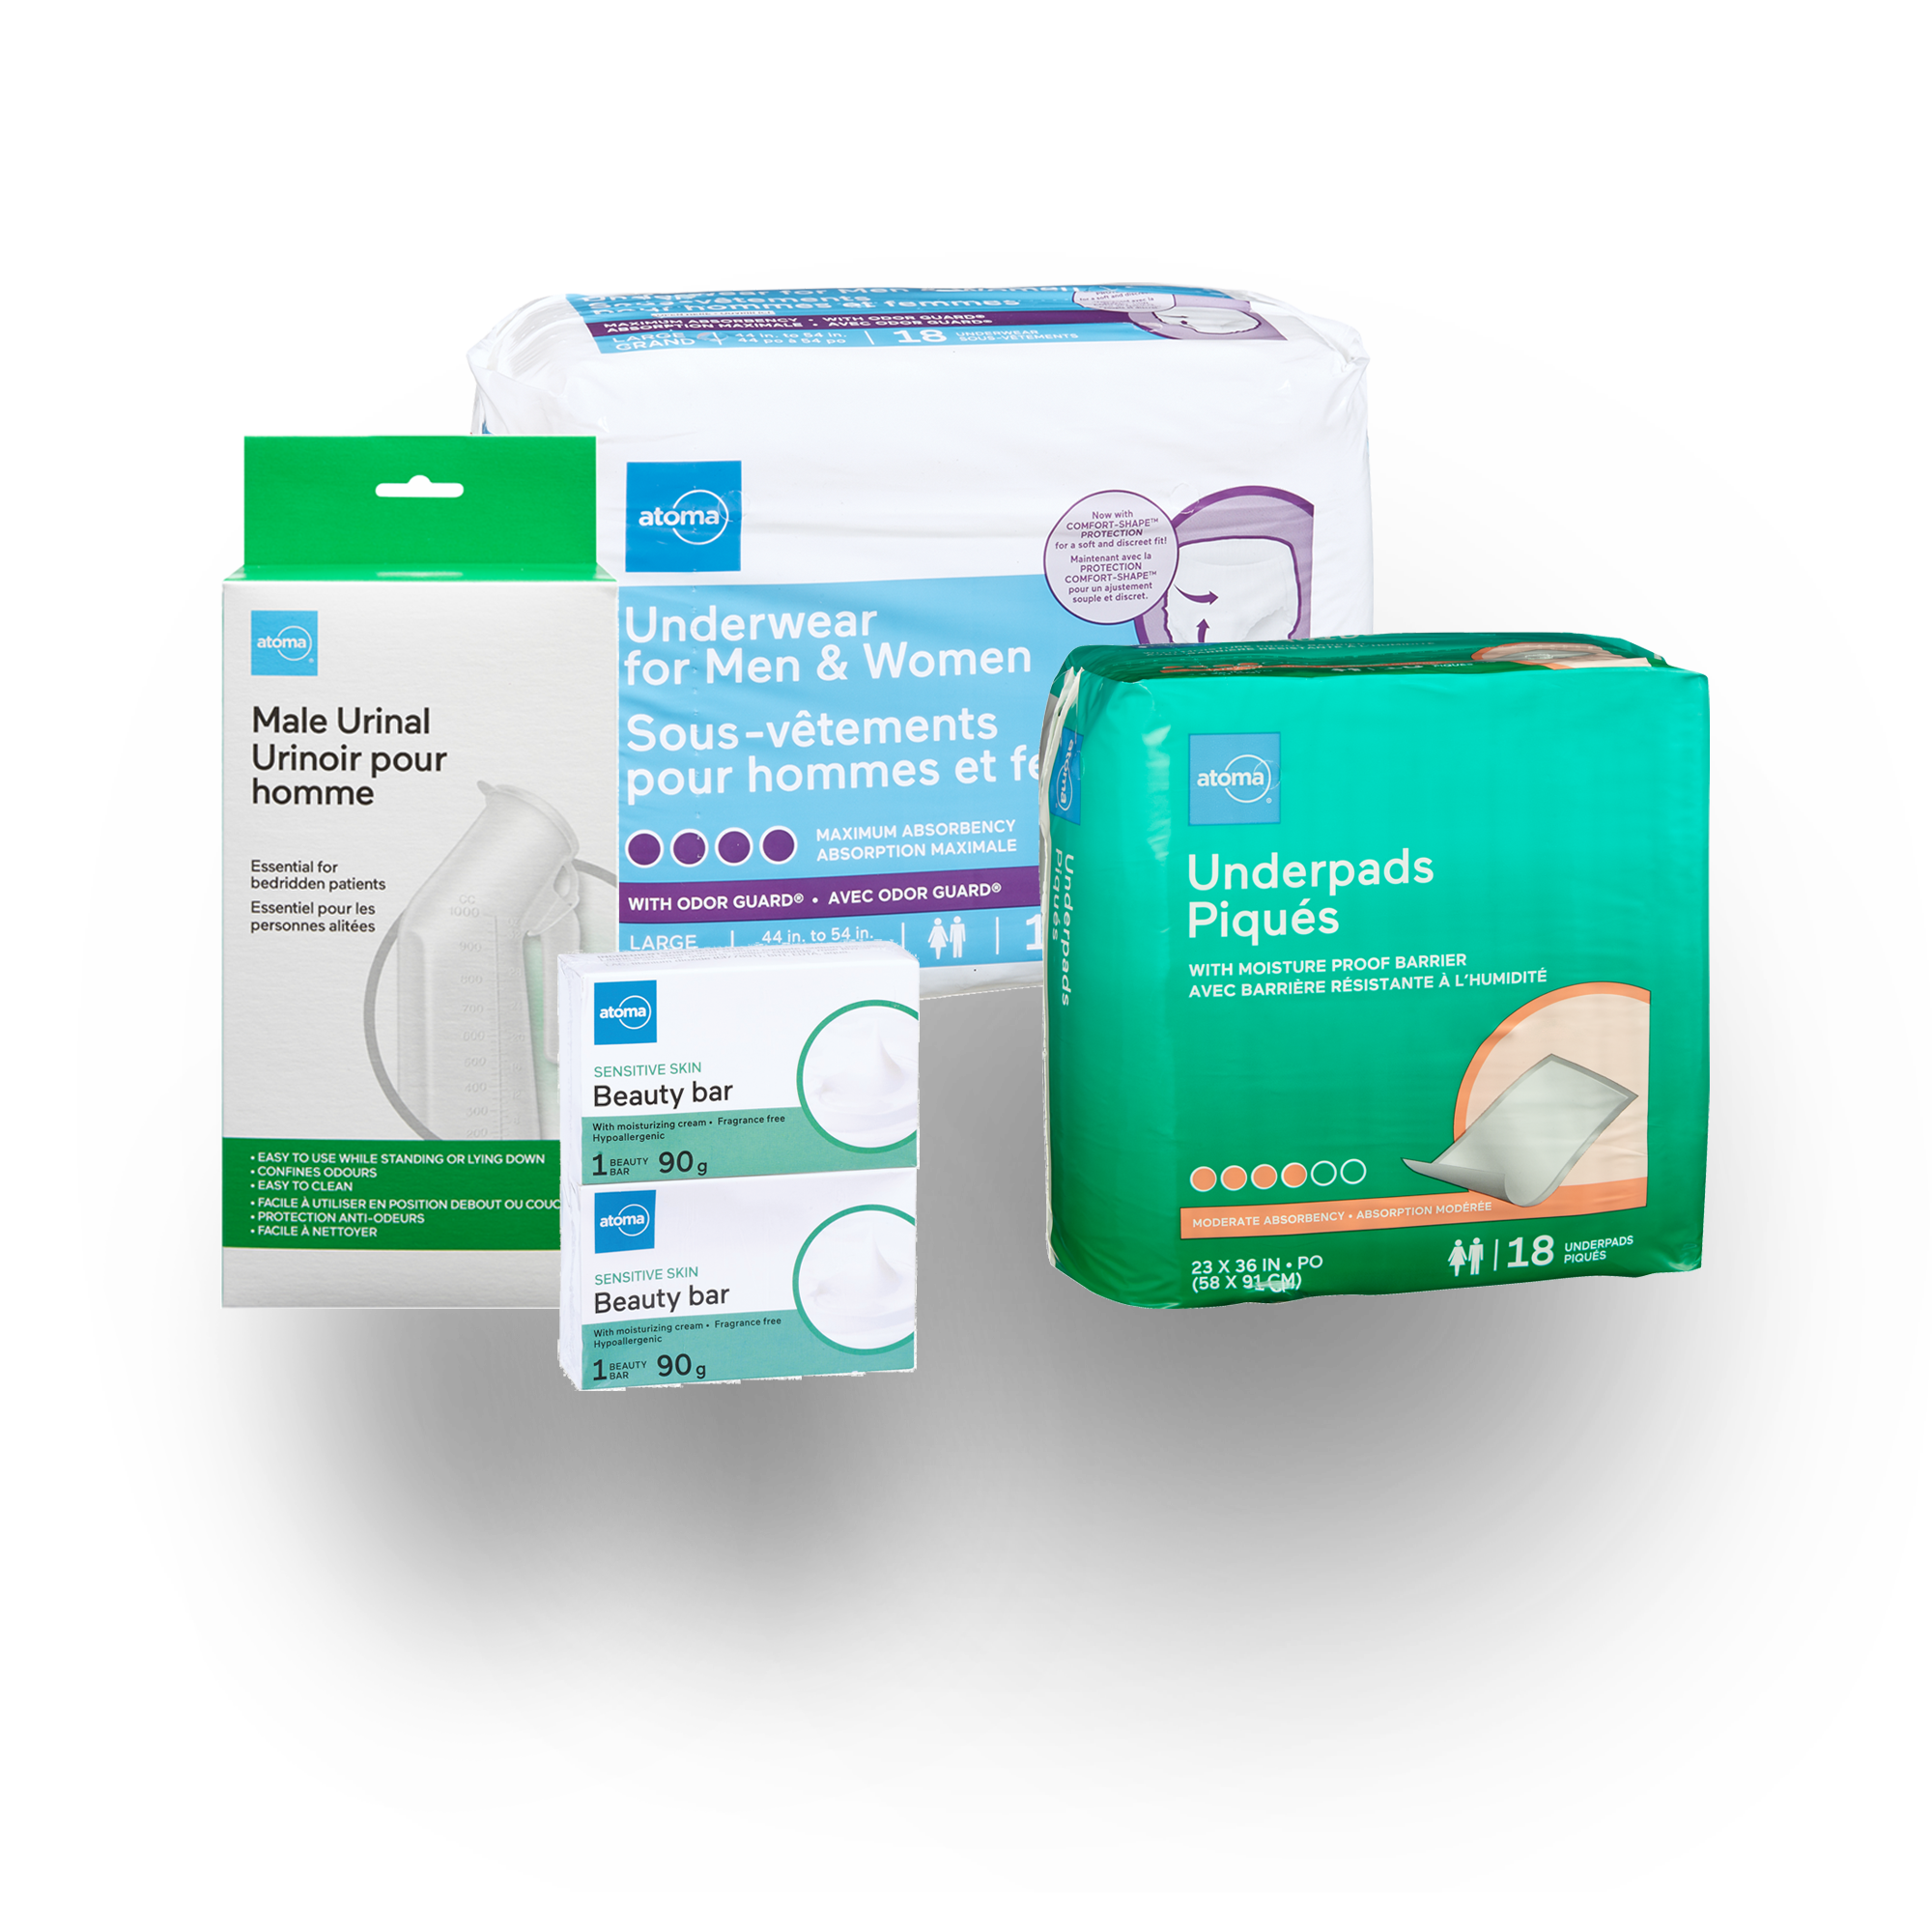 atoma incontinence products for those who are bedridden